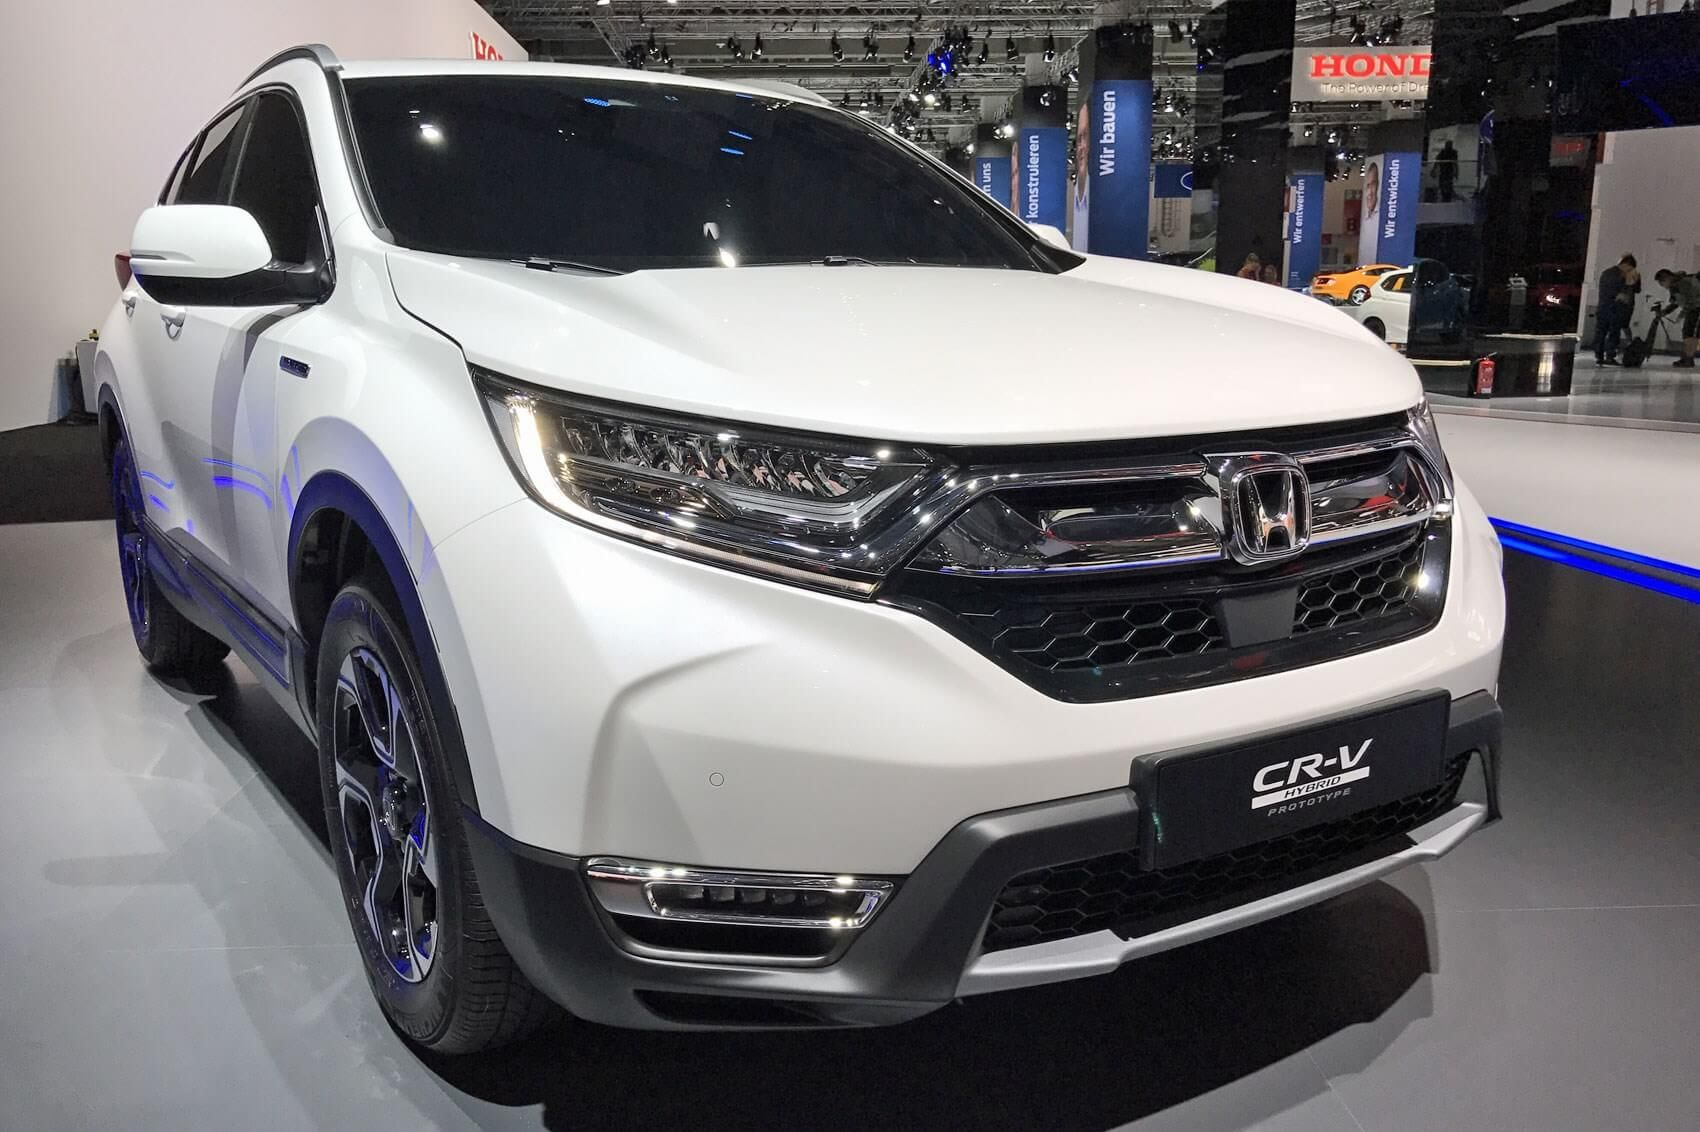 Honda Honda Crv Hibrid Front Spy Shot Honda Crv 2019 2020 As The New Japanese Crossover Honda Hrv Honda Crv Honda